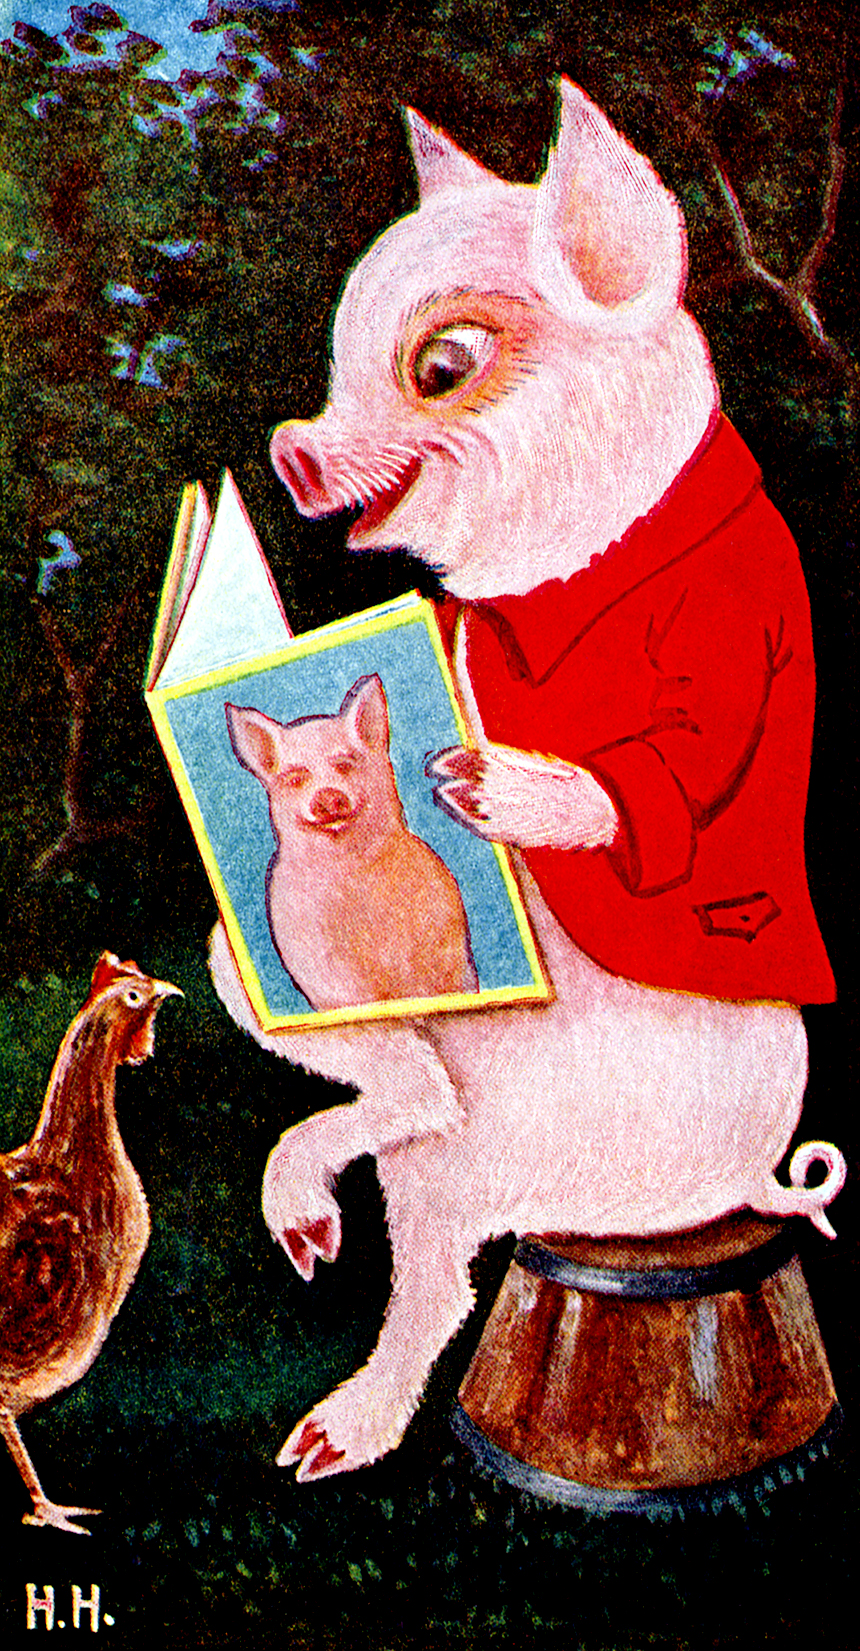 Illustration:  Jimmie Studying.  The Tale of Jimmie Piggy.  By Marjorie Manners.  The Platt & Nourse Co.: New York. 1918.